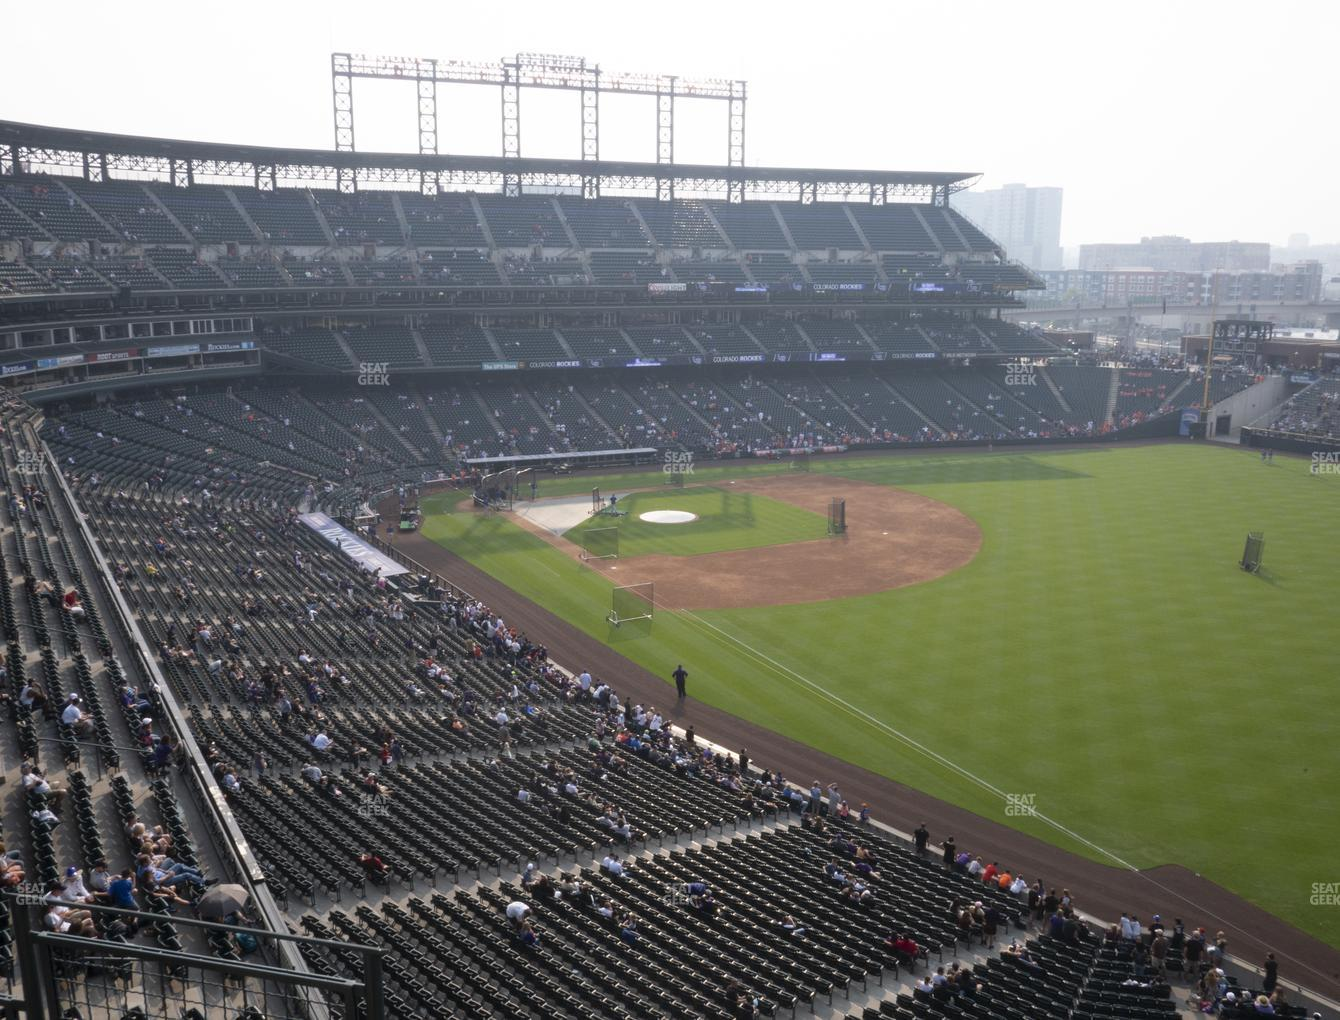 Colorado Rockies at Coors Field Lower 313 View